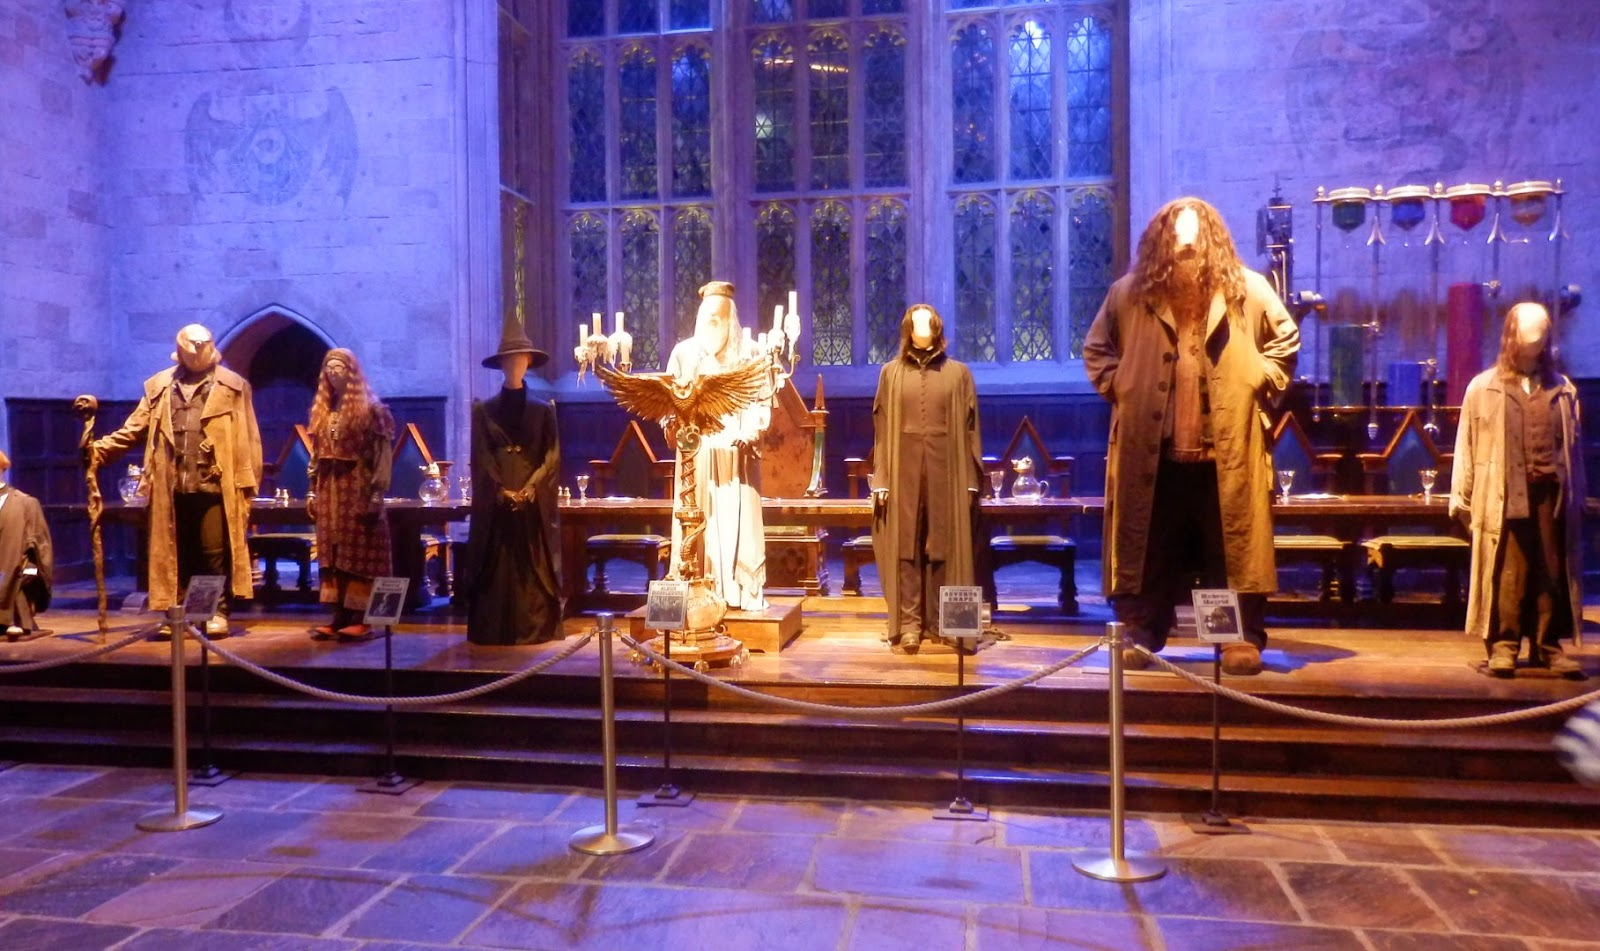 Harry Potter Warner Brothers Studio Tour London Costumes in The Great Hall